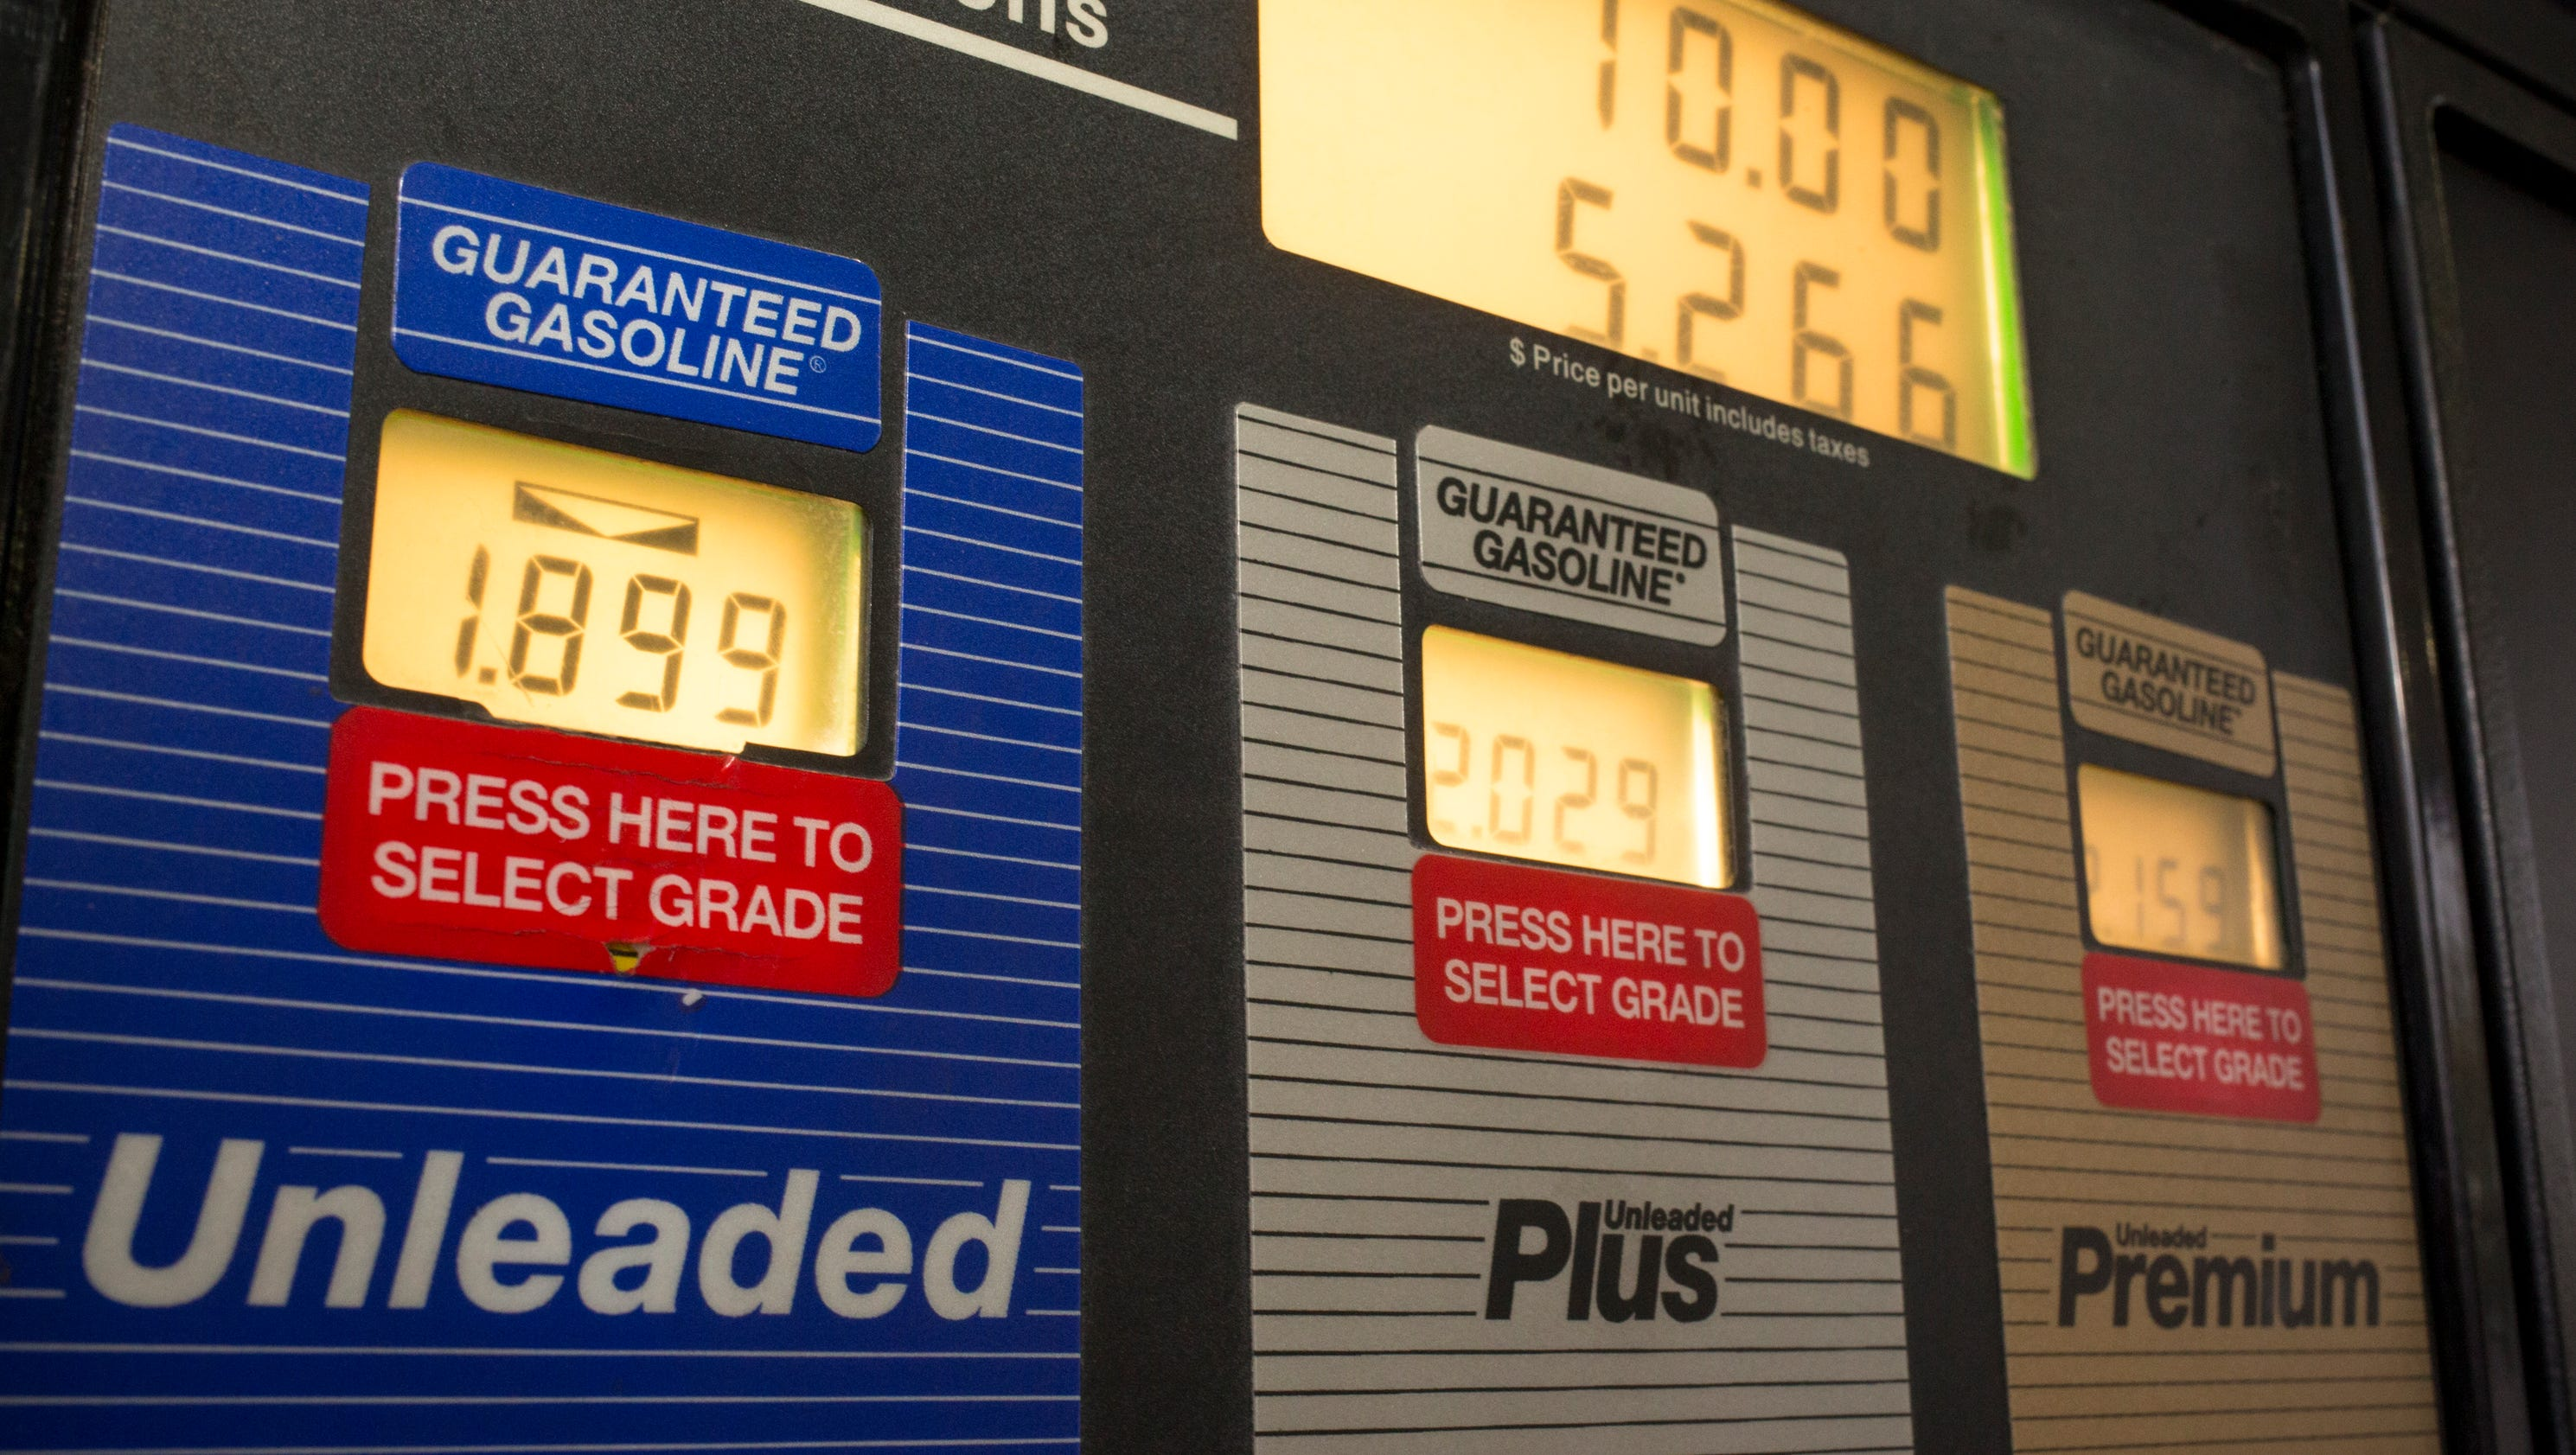 Arizona gas prices expected to stay low in 2015